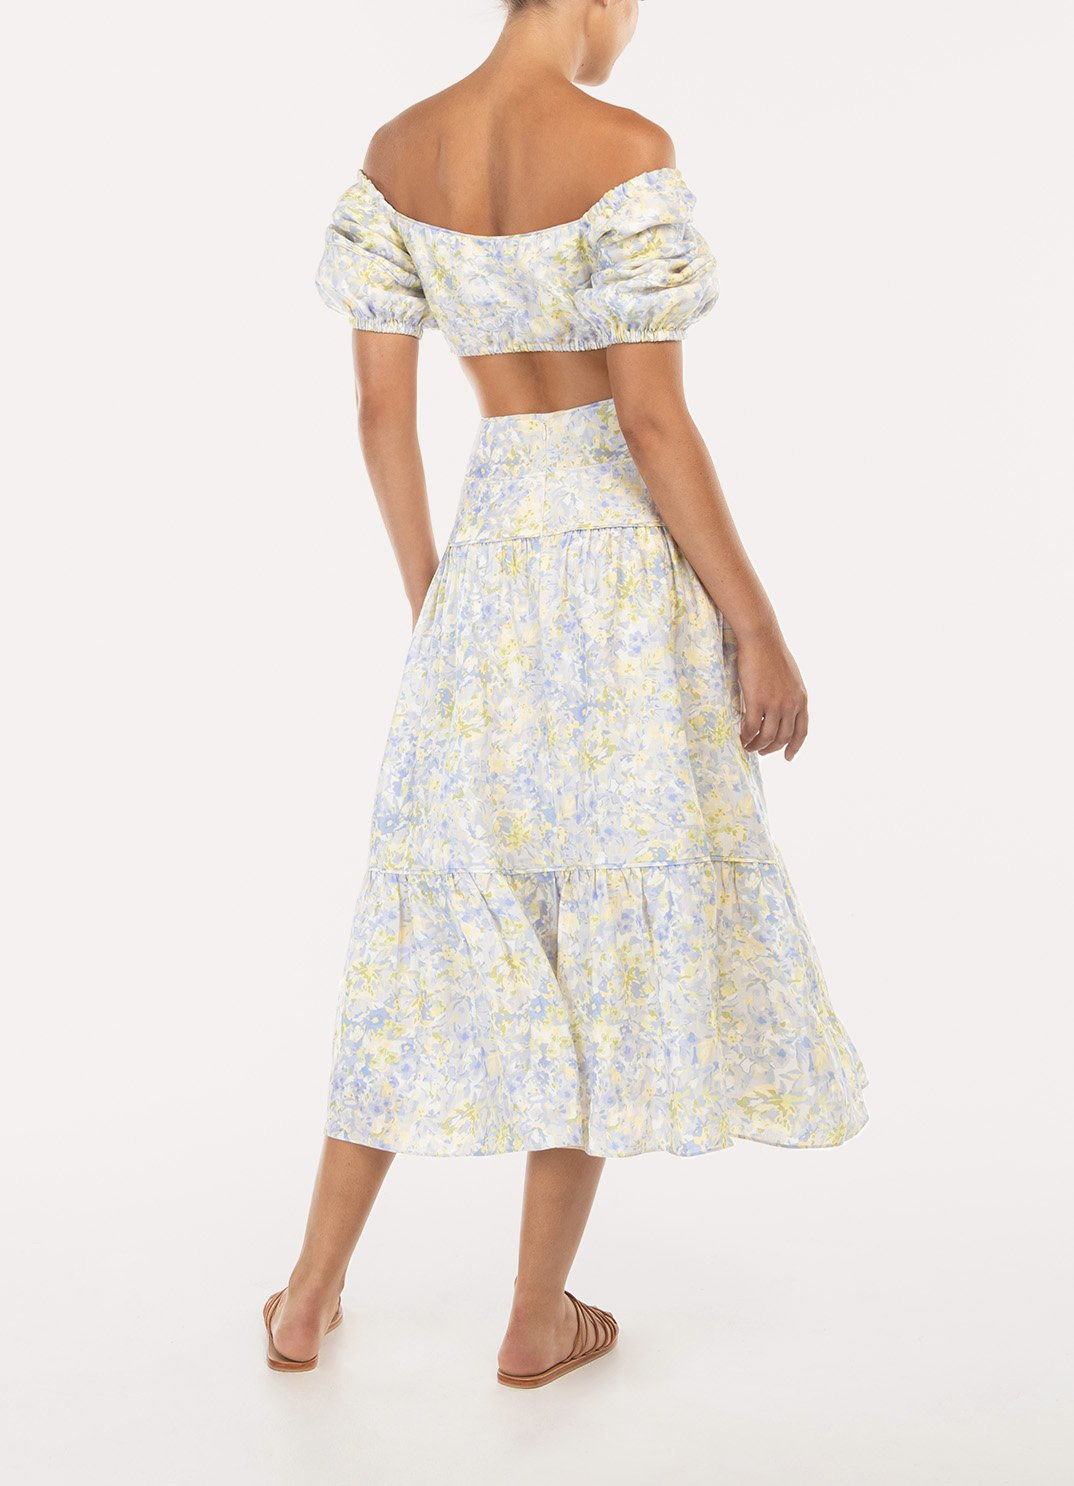 Forget Me Not Cut Out Dress